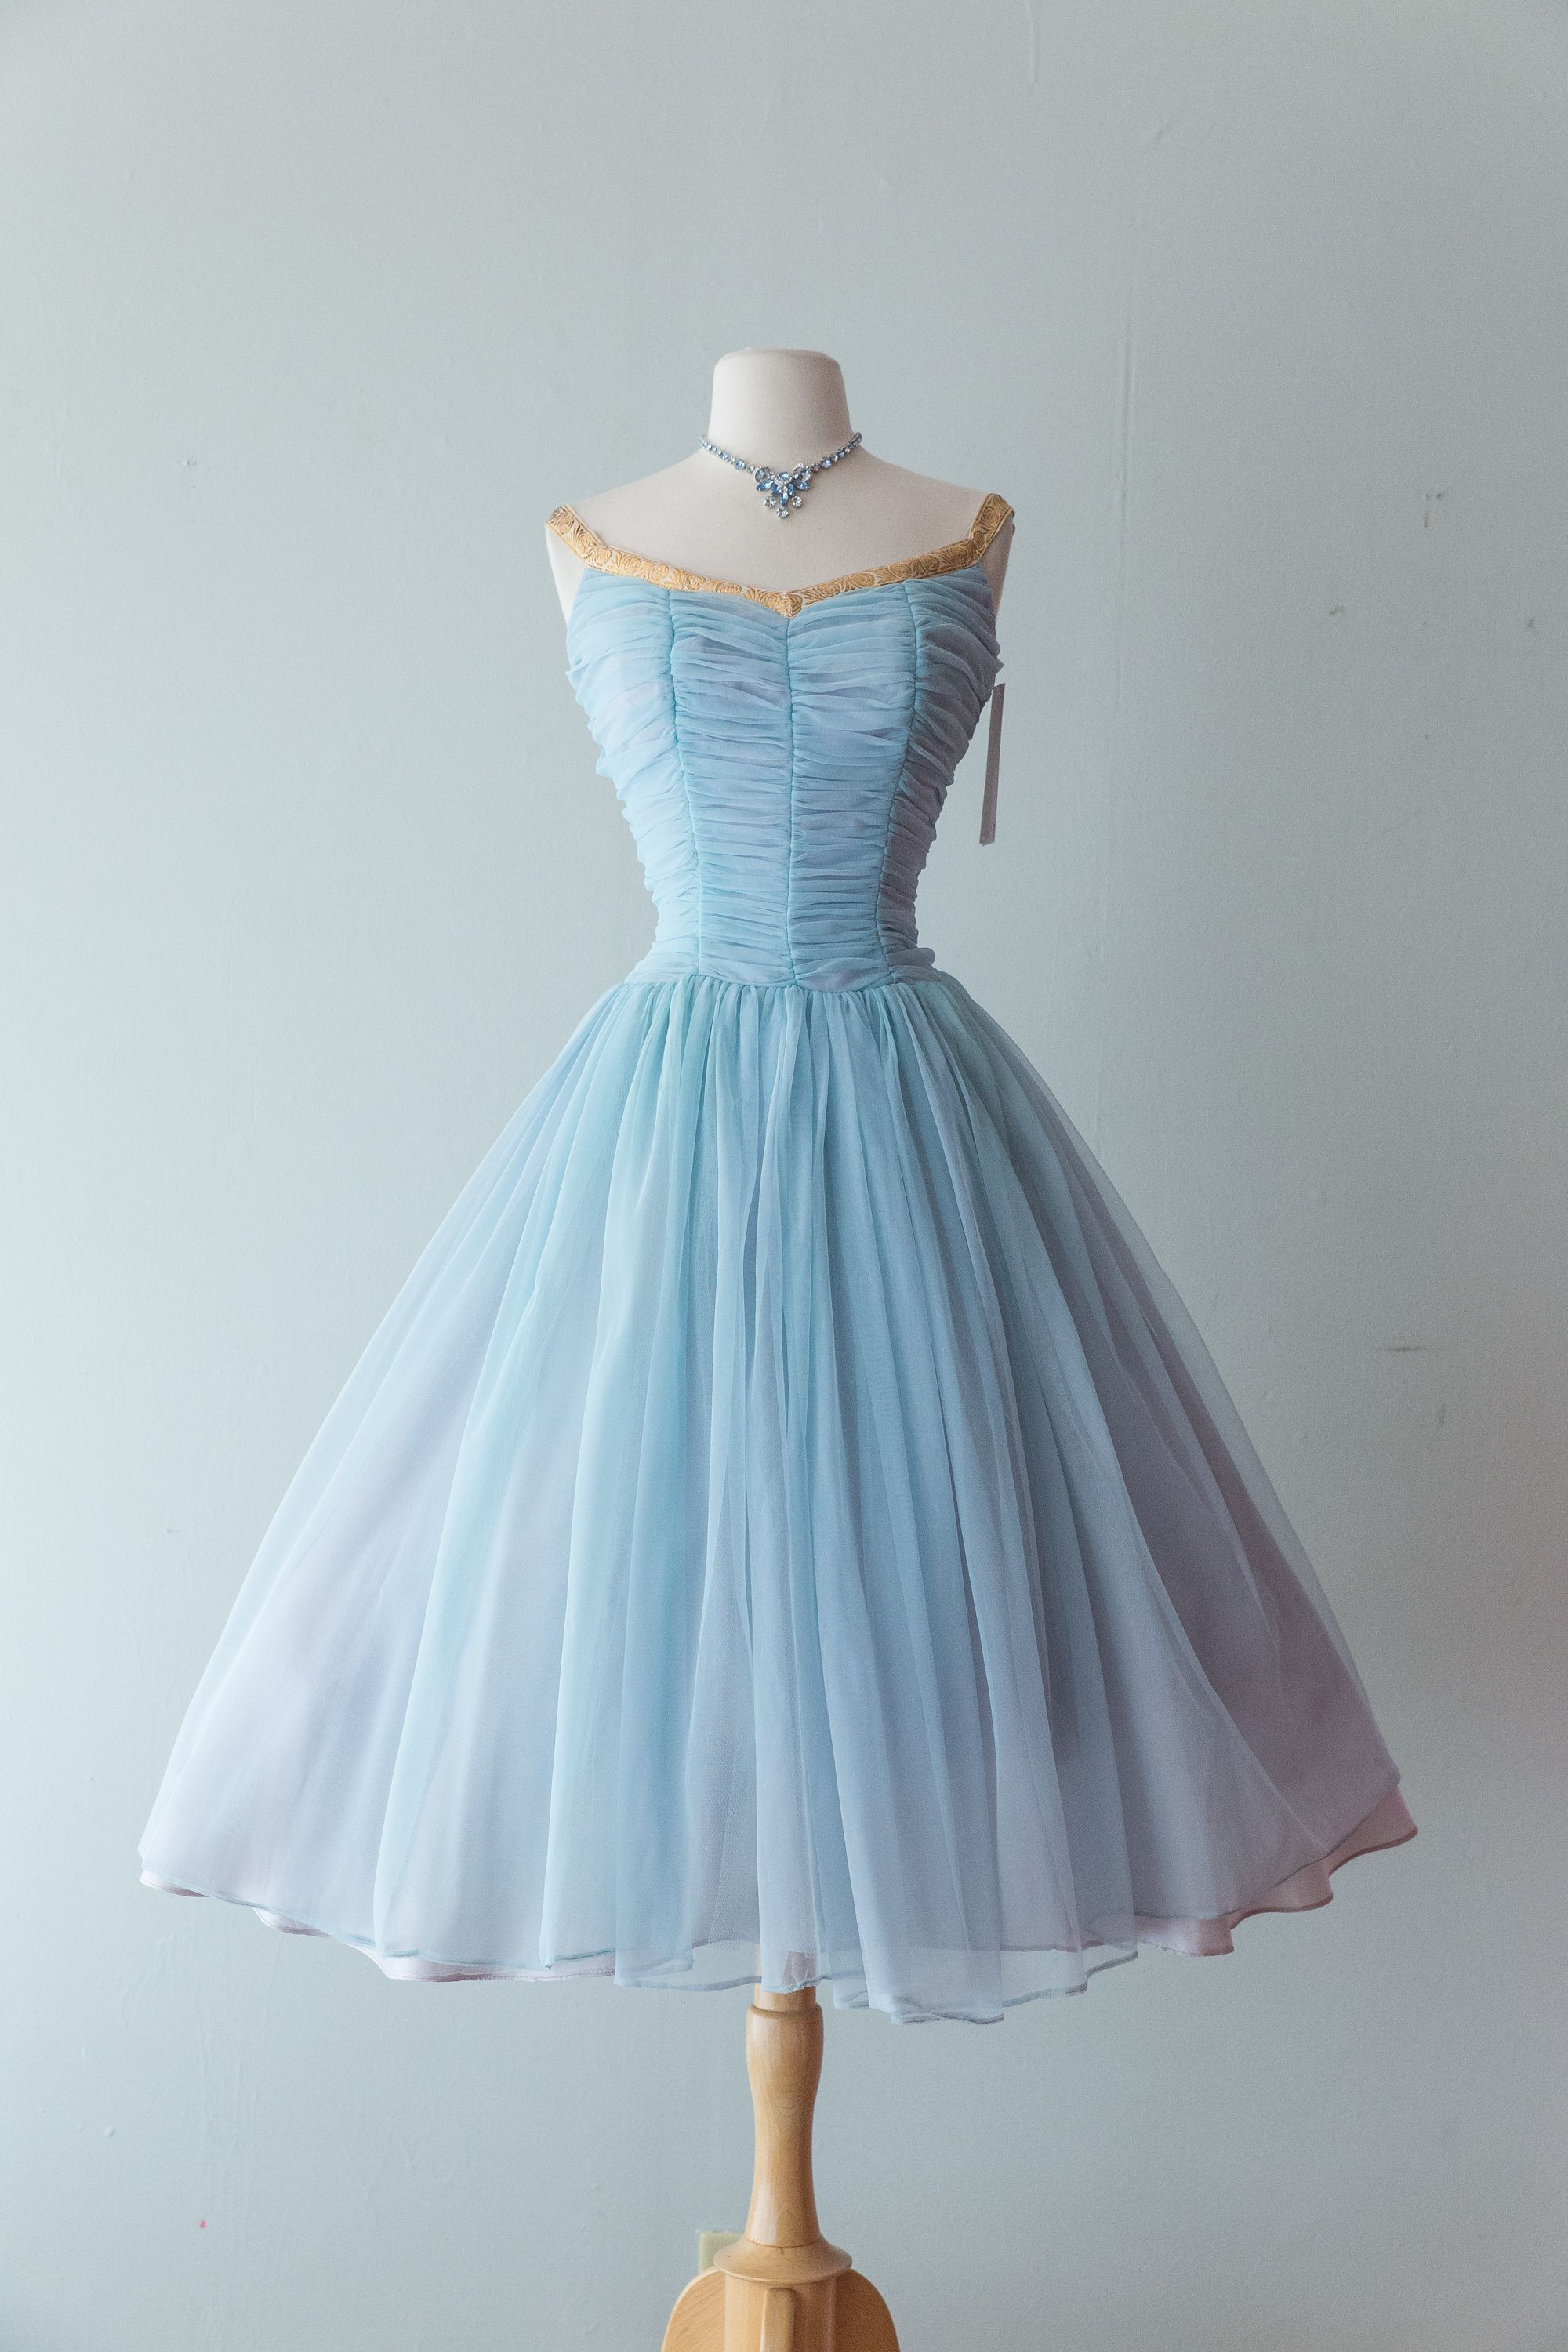 Pin by Alina on Kleider | Pinterest | Blue party dress, Blue party ...